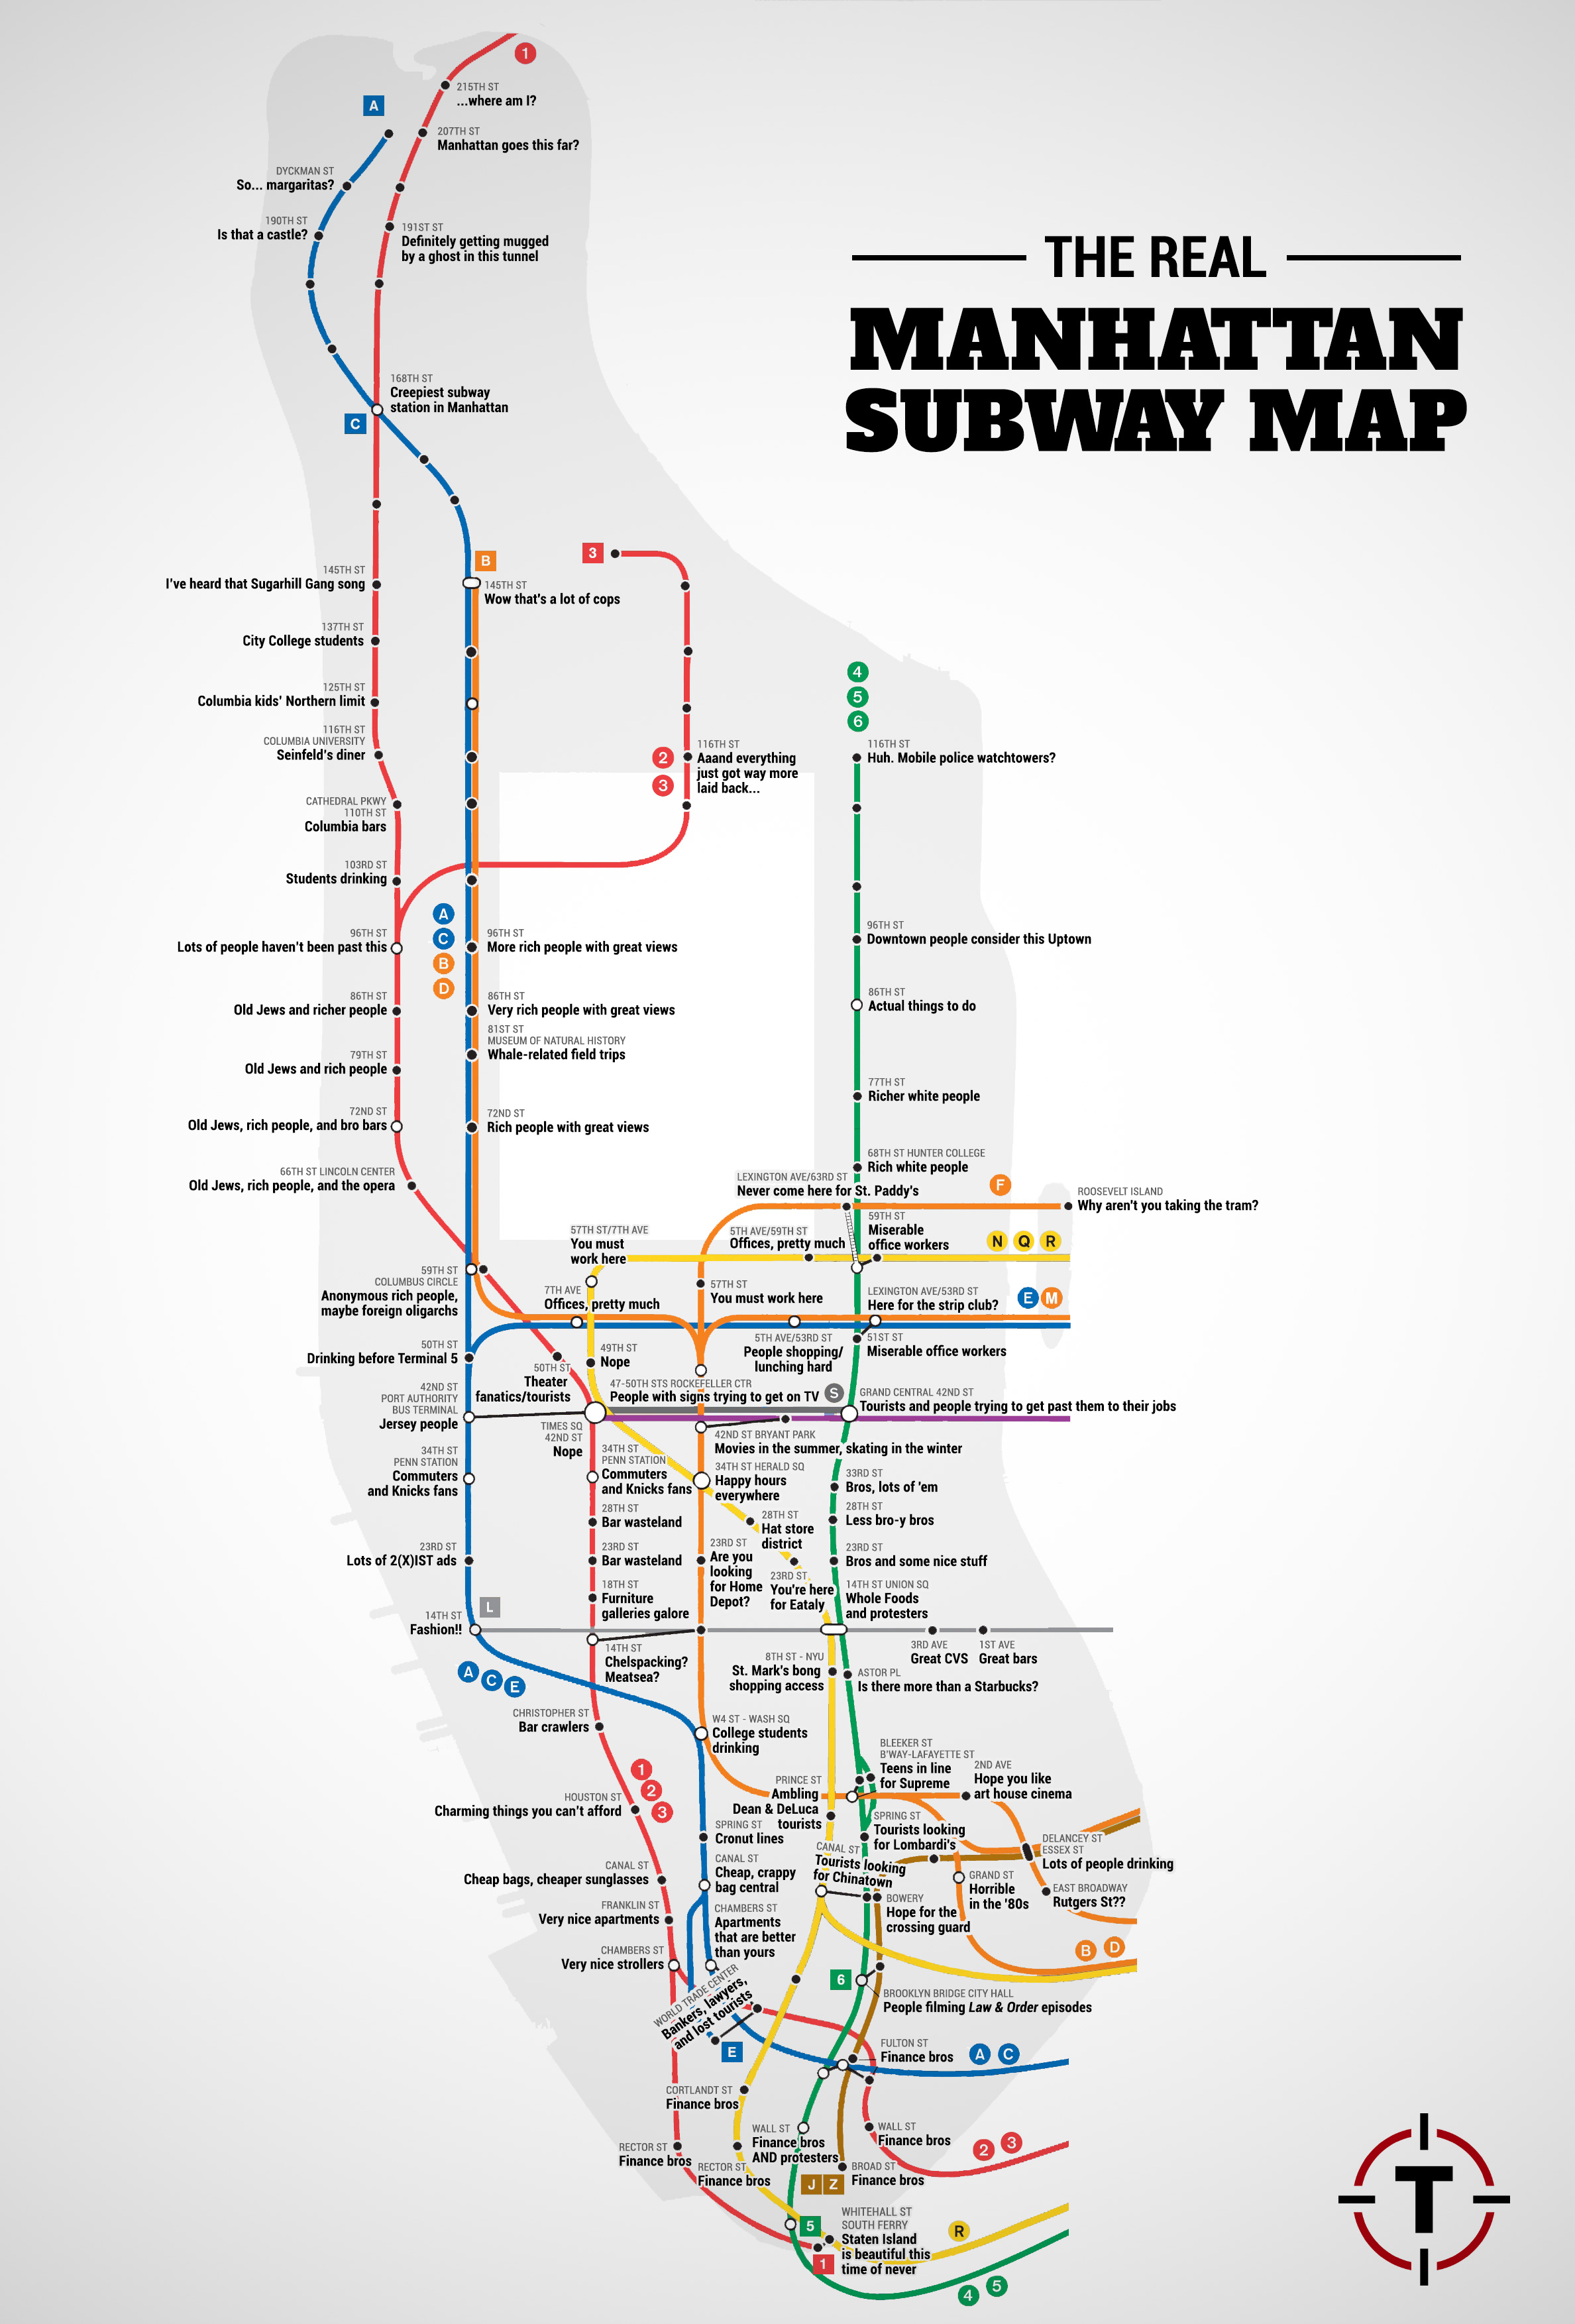 New York Subway Map Mobile.Funny Subway Map Sums Up The Typical Commute Across New York City